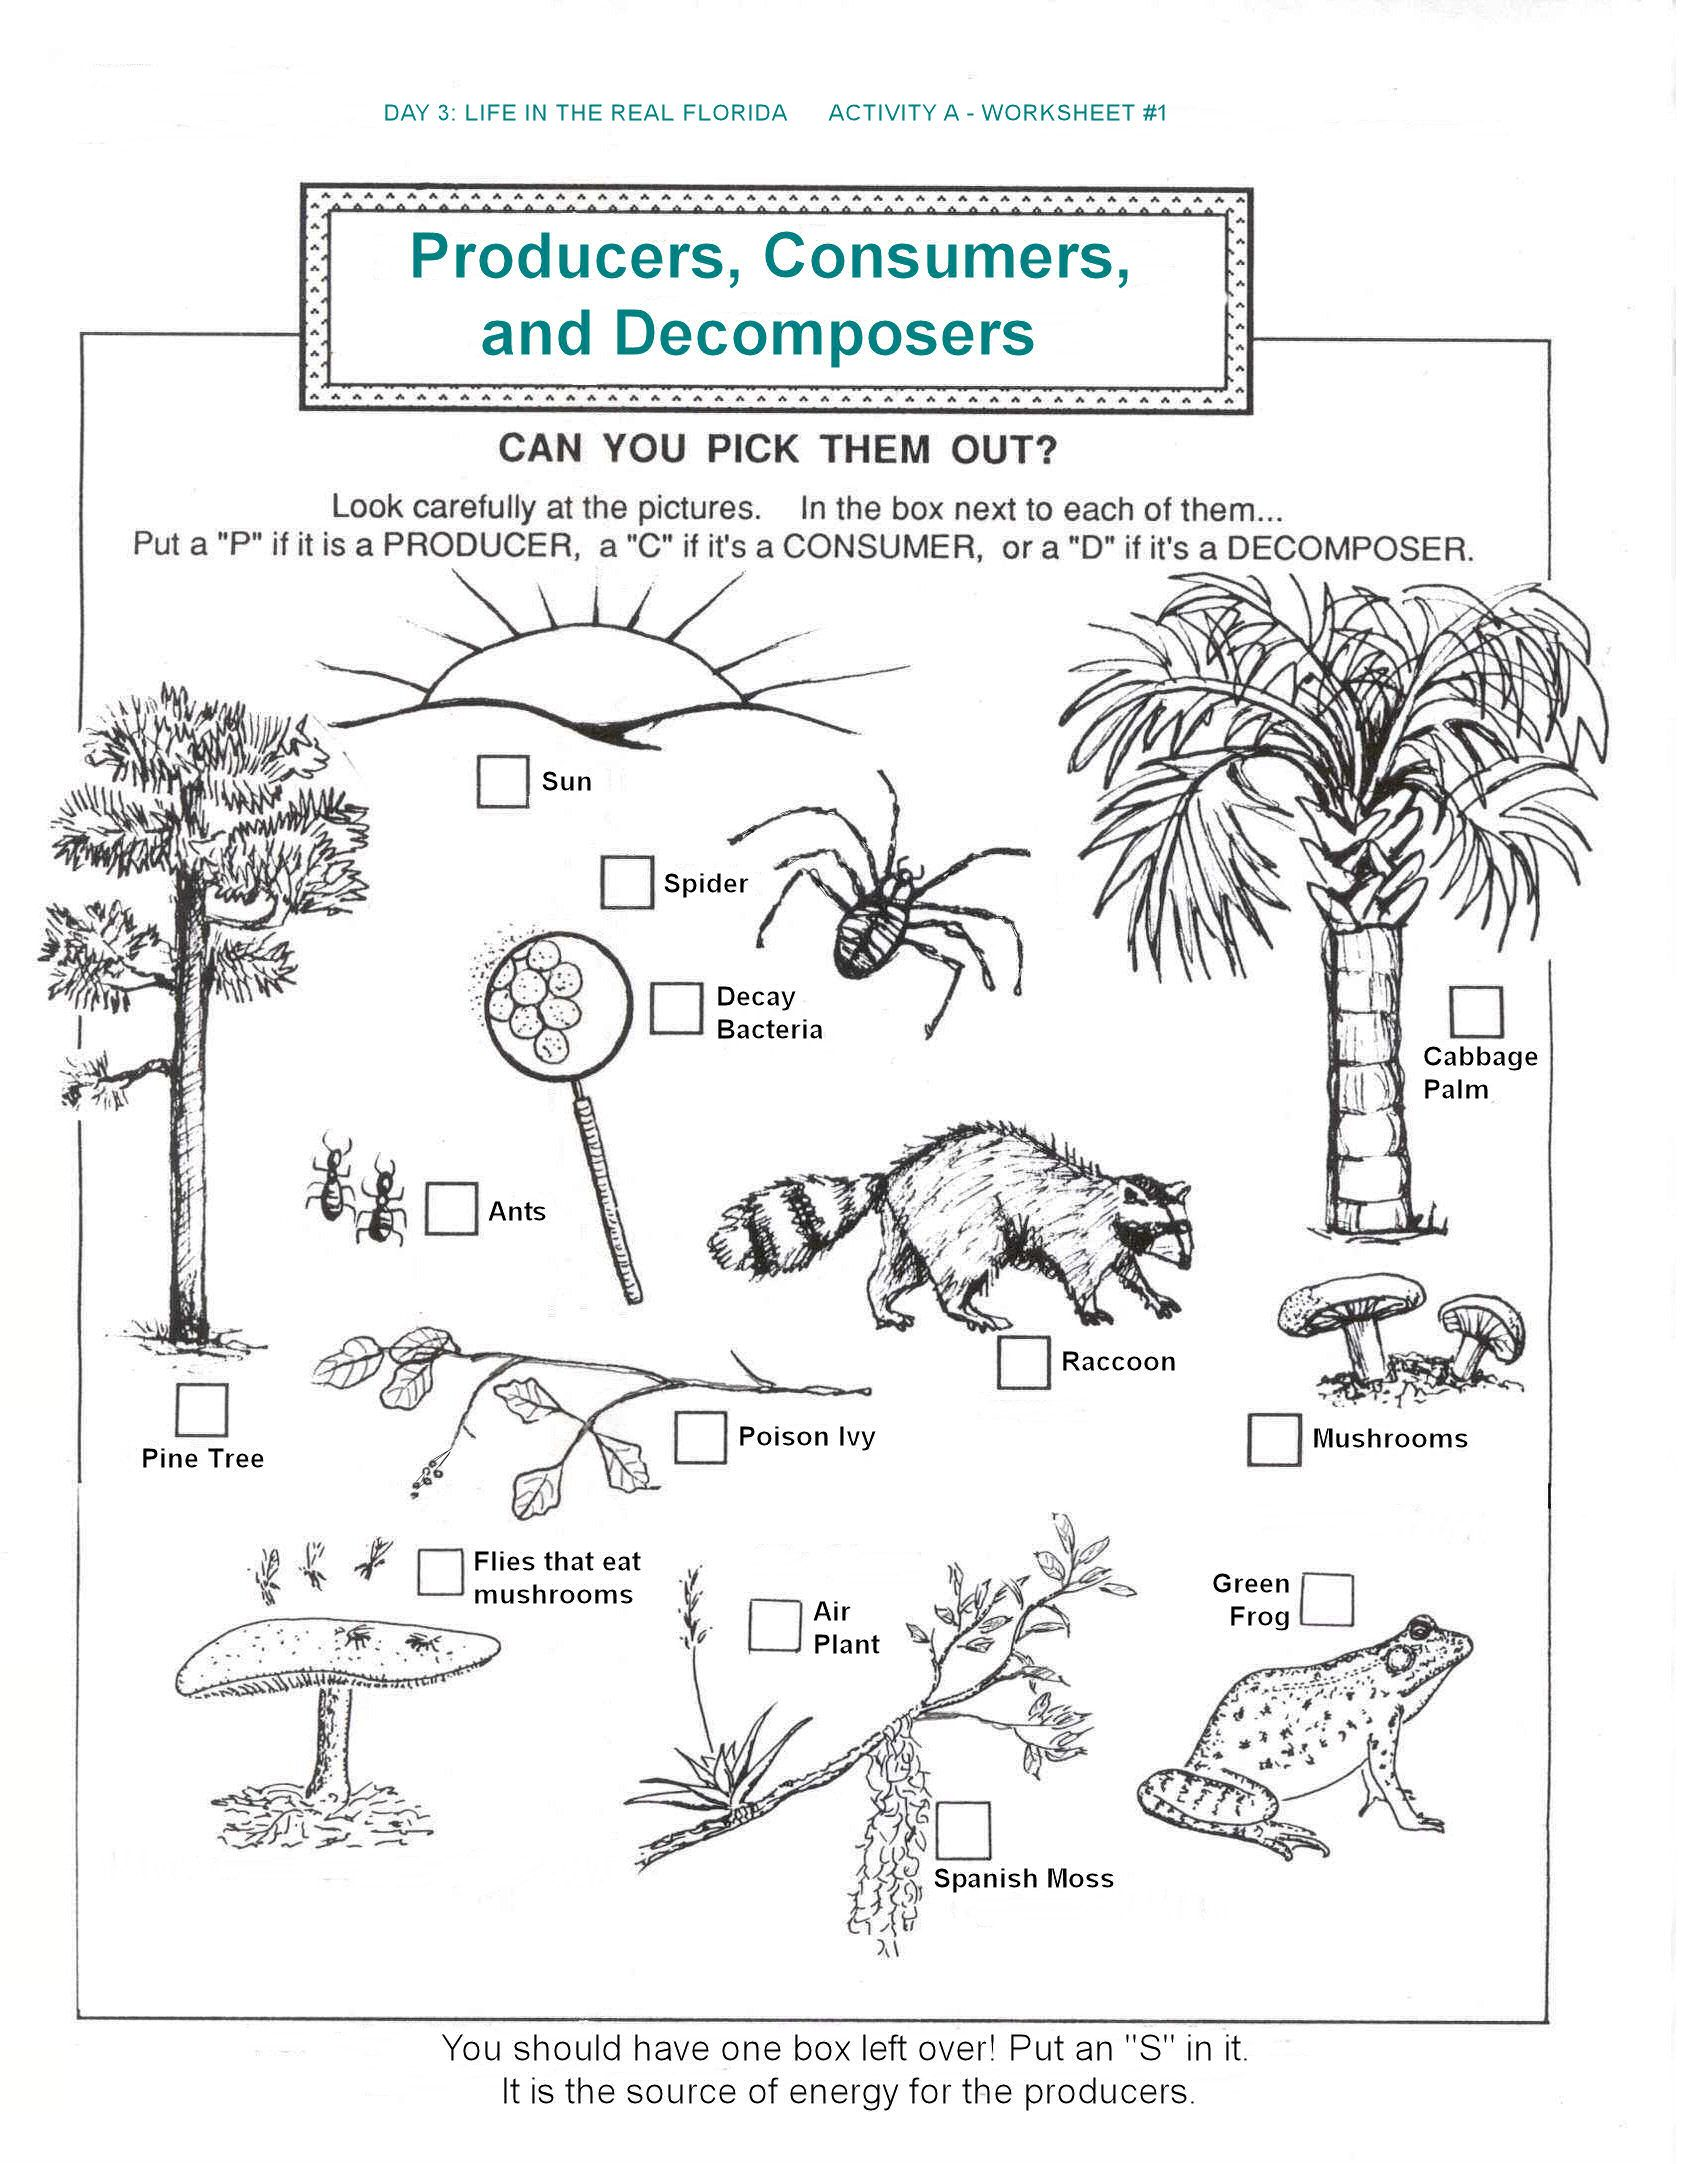 decomposers worksheets for kids – Producer and Consumer Worksheet